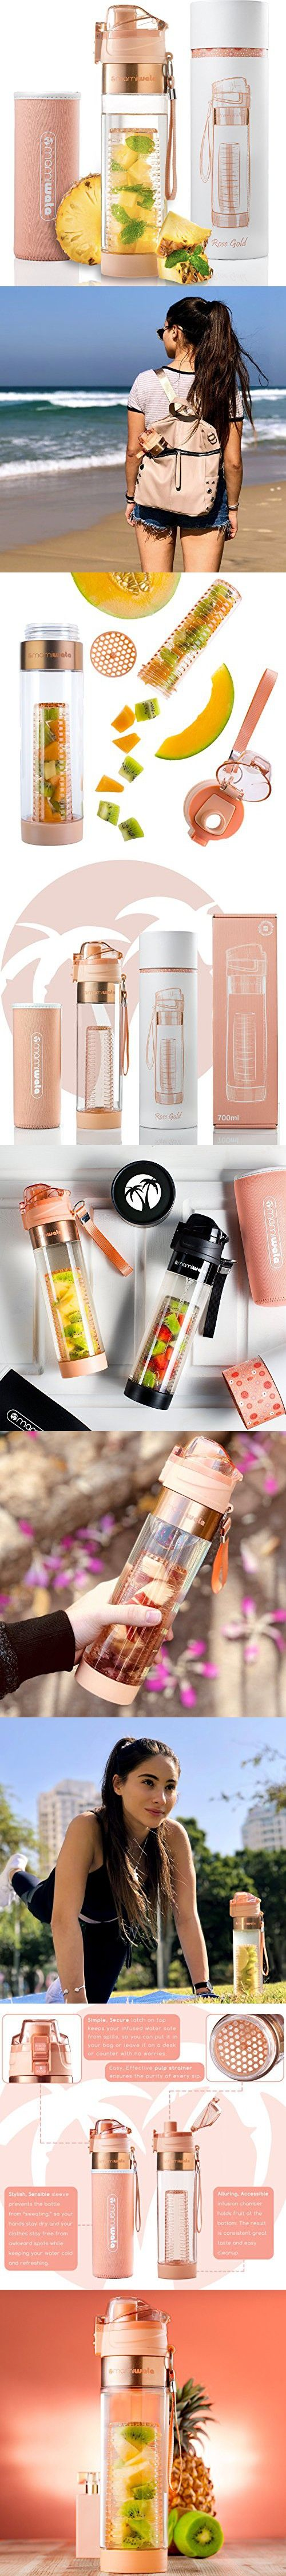 ee94b04ccb MAMI WATA Fruit Infuser Water Bottle – Create Naturally Flavoured Fruit Infused  Water – Unique stylish design, Beautiful Gift Box, Insulated sleeve, ...